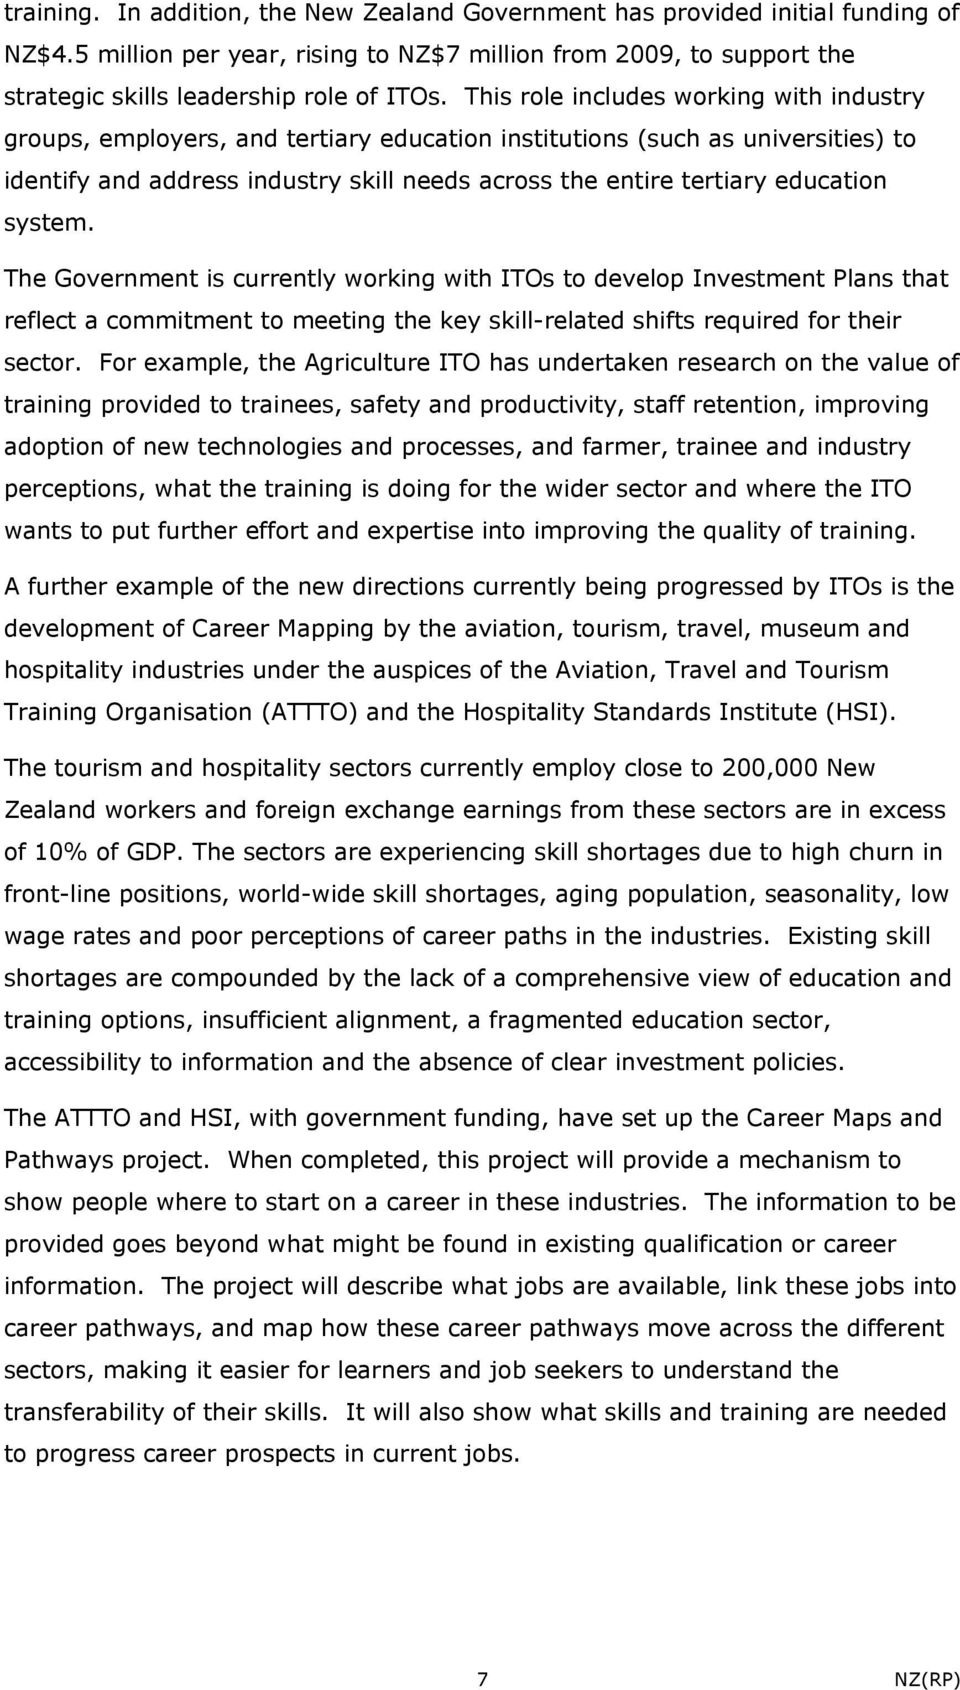 education system. The Government is currently working with ITOs to develop Investment Plans that reflect a commitment to meeting the key skill-related shifts required for their sector.